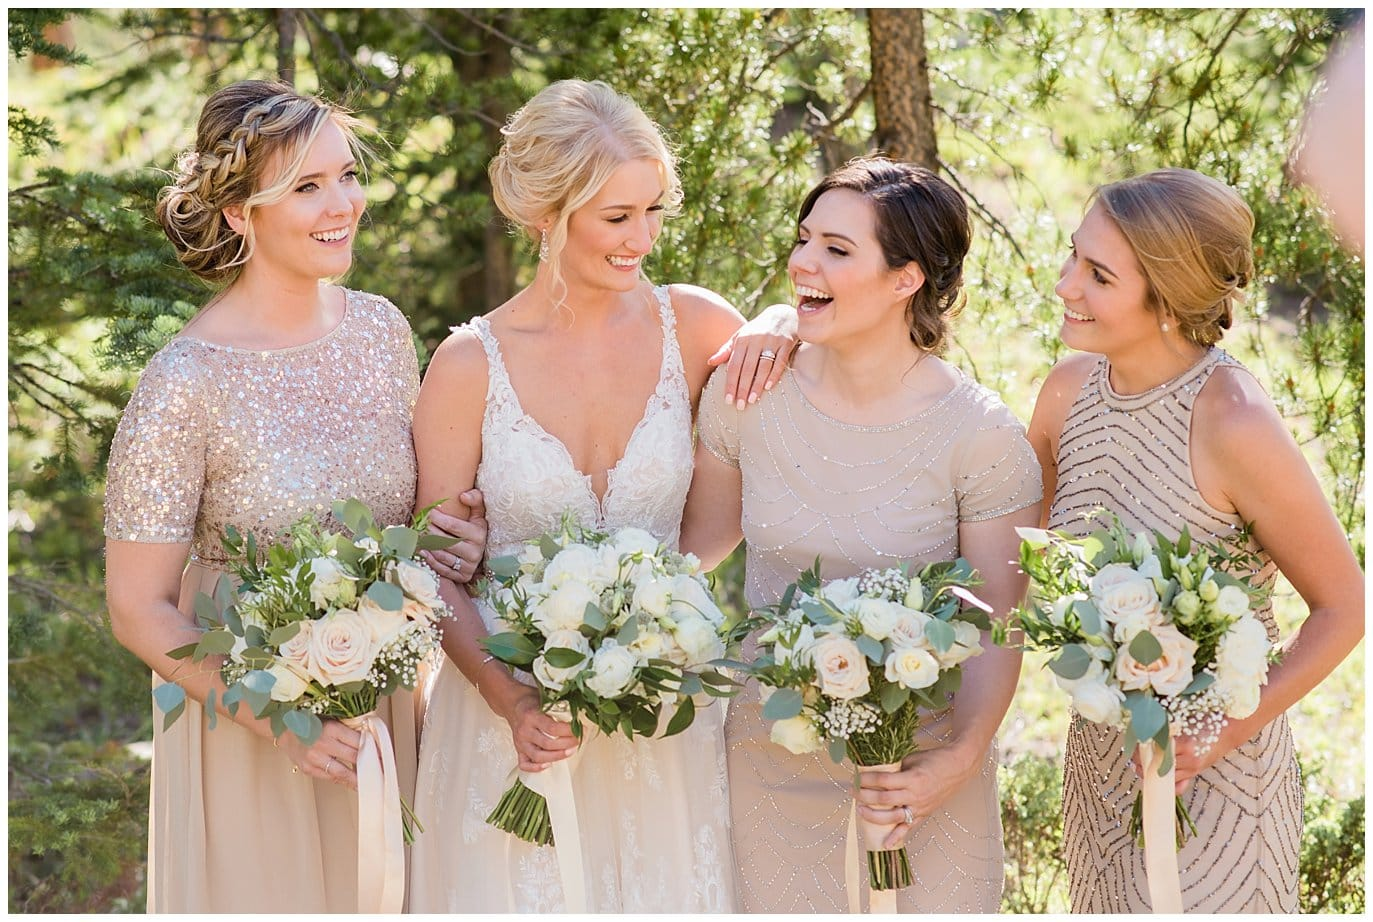 nude and sparkles mismatched bridesmaid dresses at Summer Piney River Ranch wedding by Vail wedding photographer Jennie Crate, Photographer